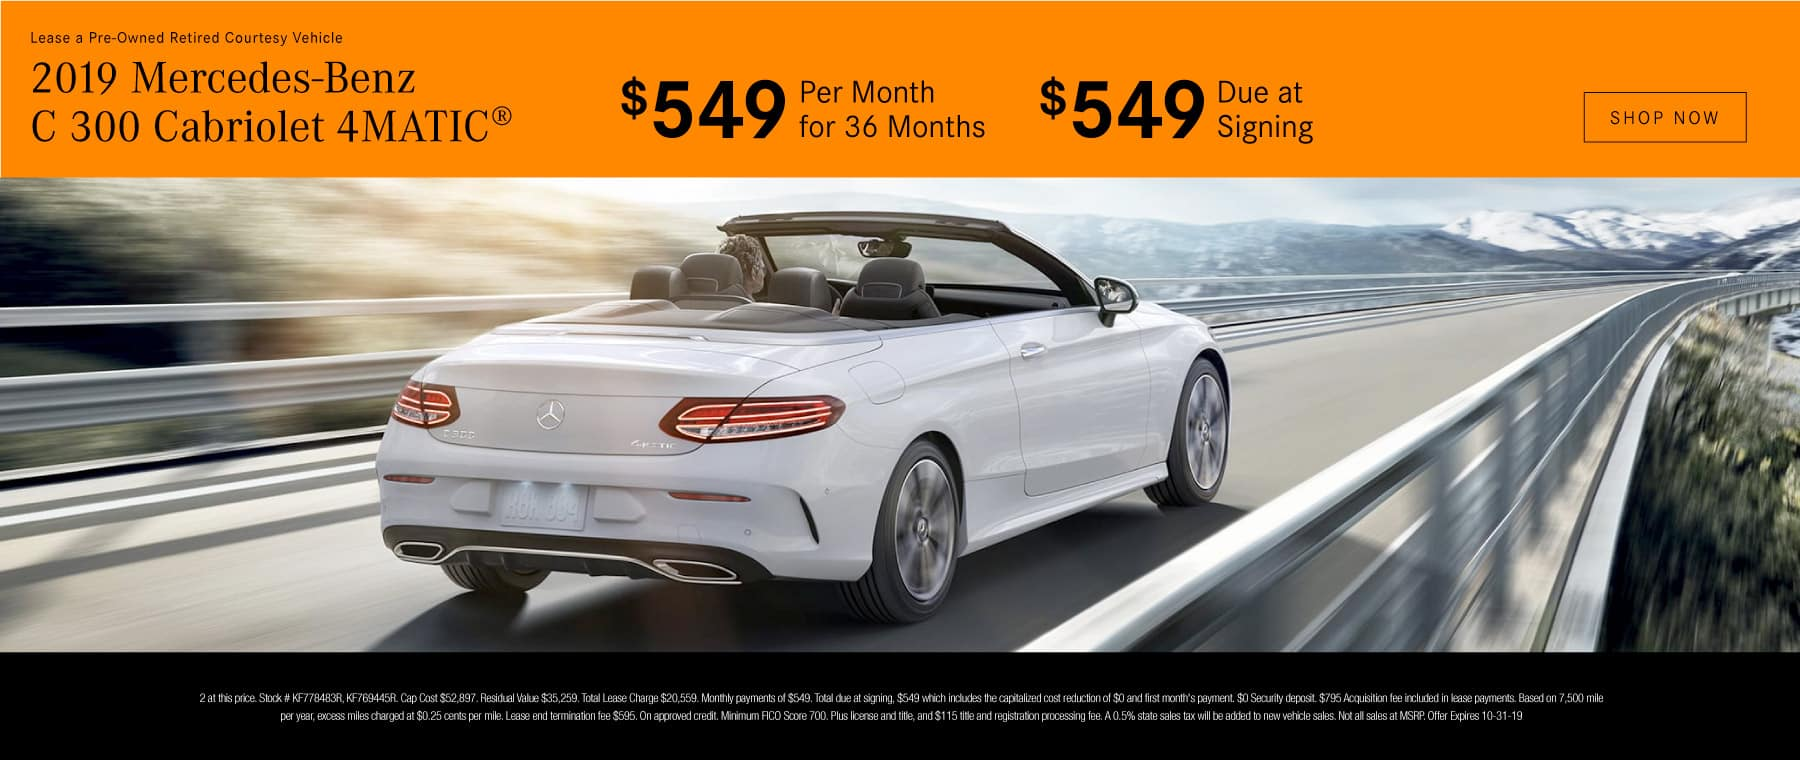 2019 C 300 CABRIOLET 4MATIC LEASE 549 / 36 MONTHS